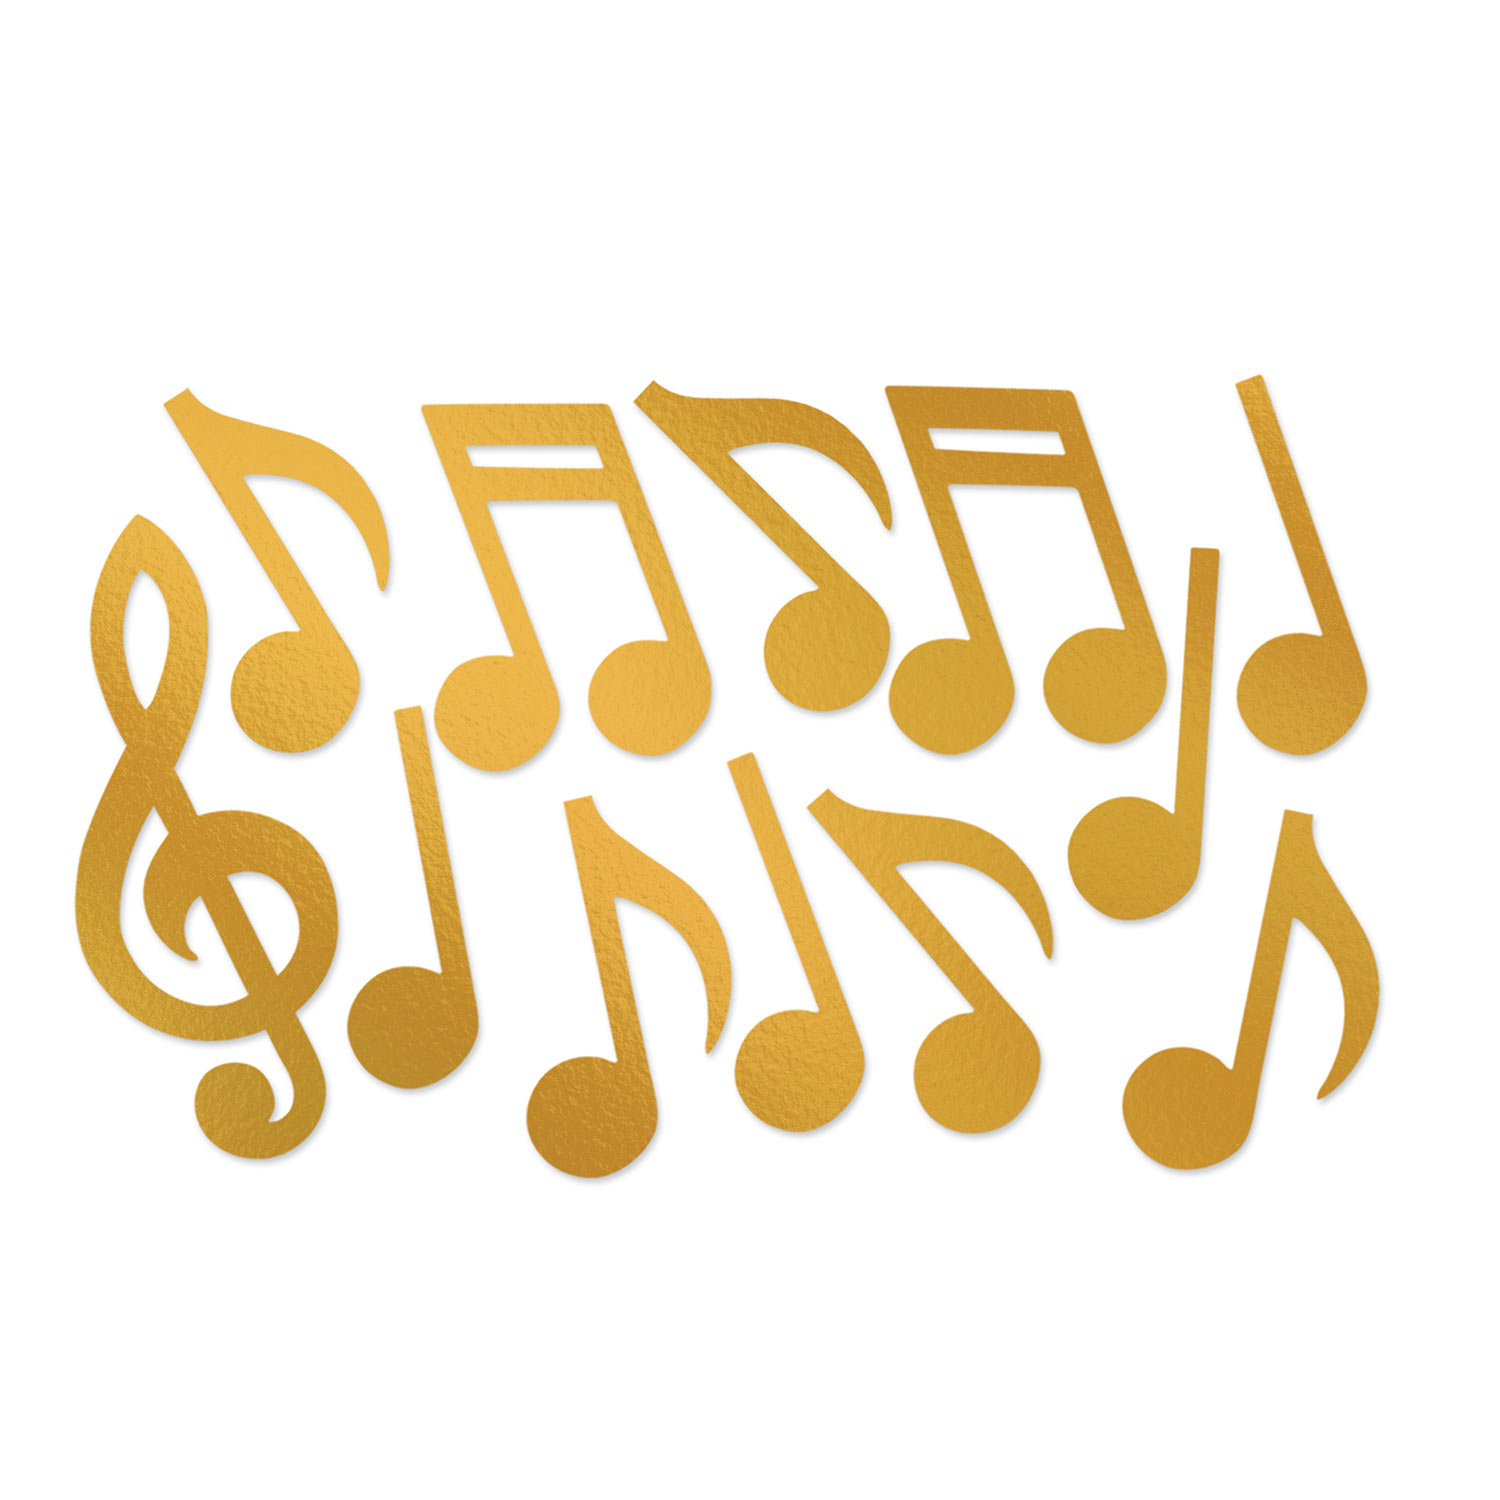 Golden Musical Note Silhouettes